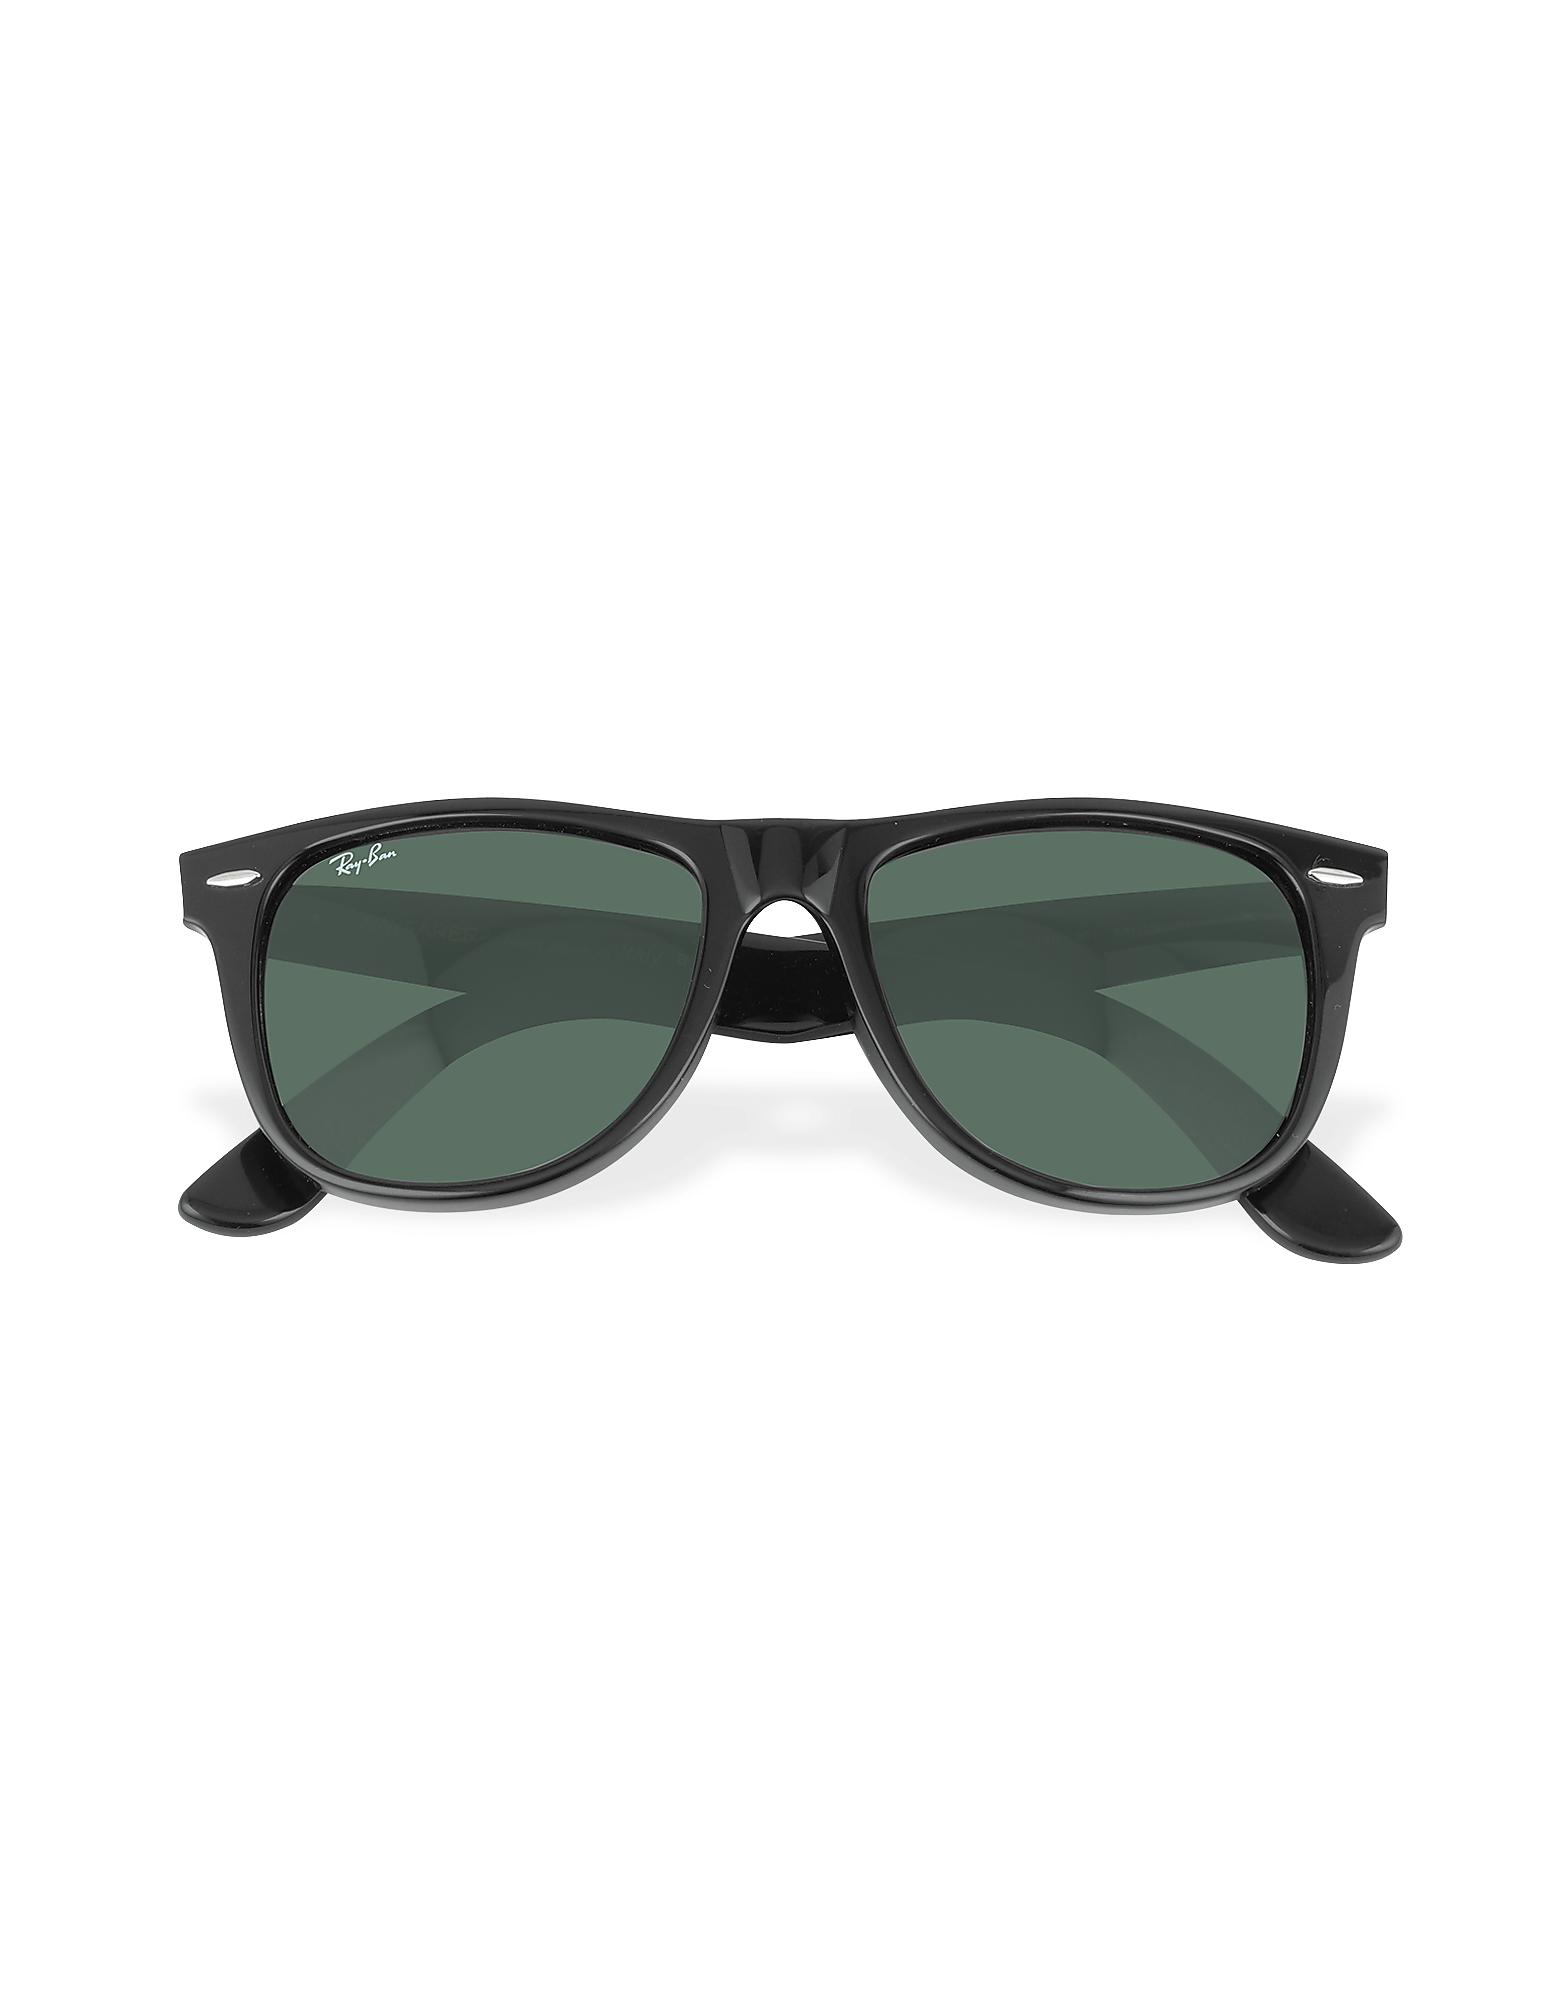 287cf24194 ... denmark ray ban original wayfarer square acetate sunglasses in black  for men lyst 19fbf ae309